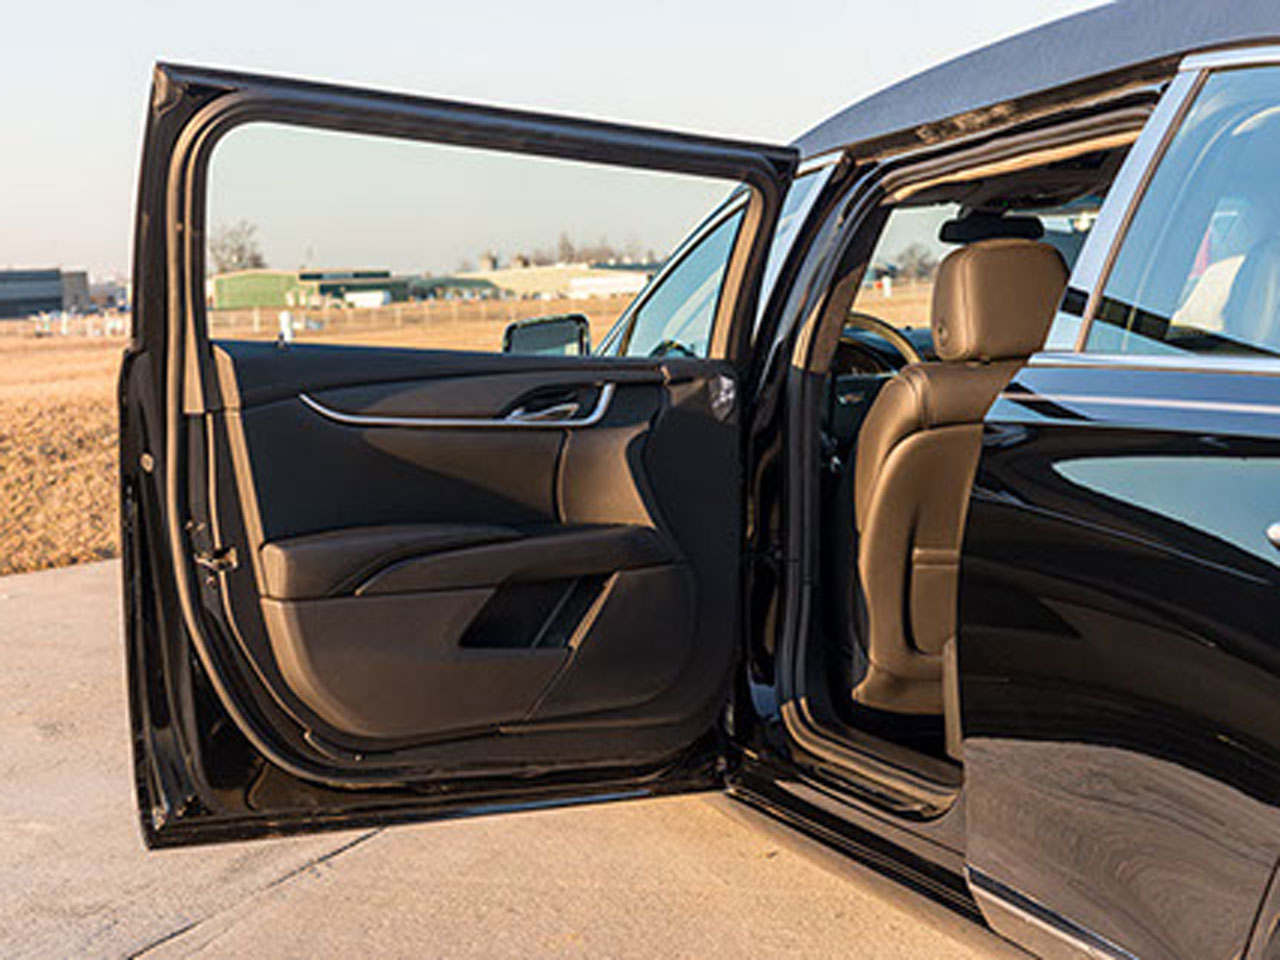 2019 Platinum Coach Six Door Limousine 3